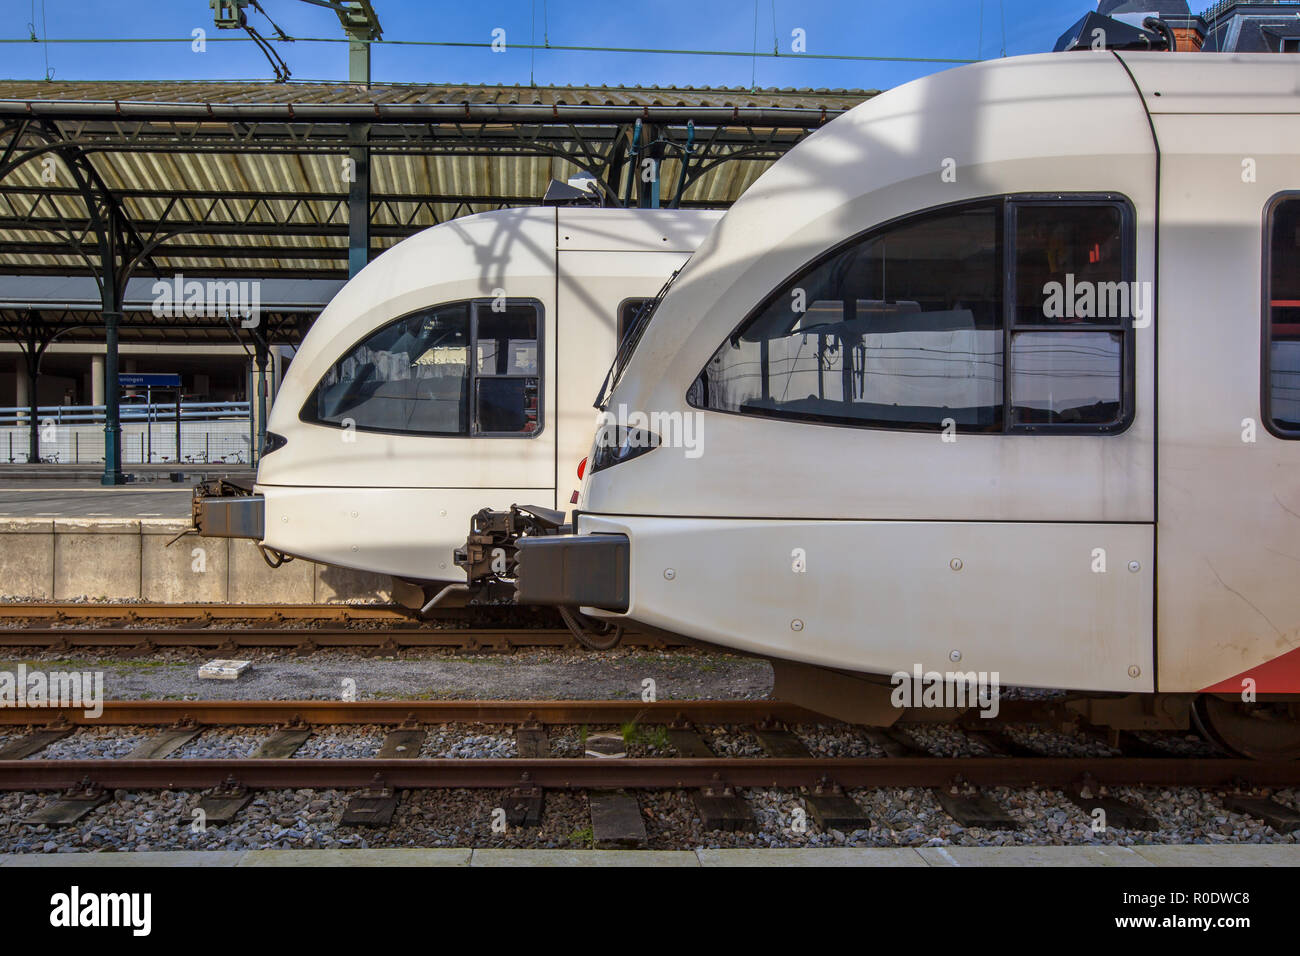 Two light rail trains on Central Station in Groningen waiting at the platform to leave for Delfzijl. The light rail trains are an easy and comfortable - Stock Image